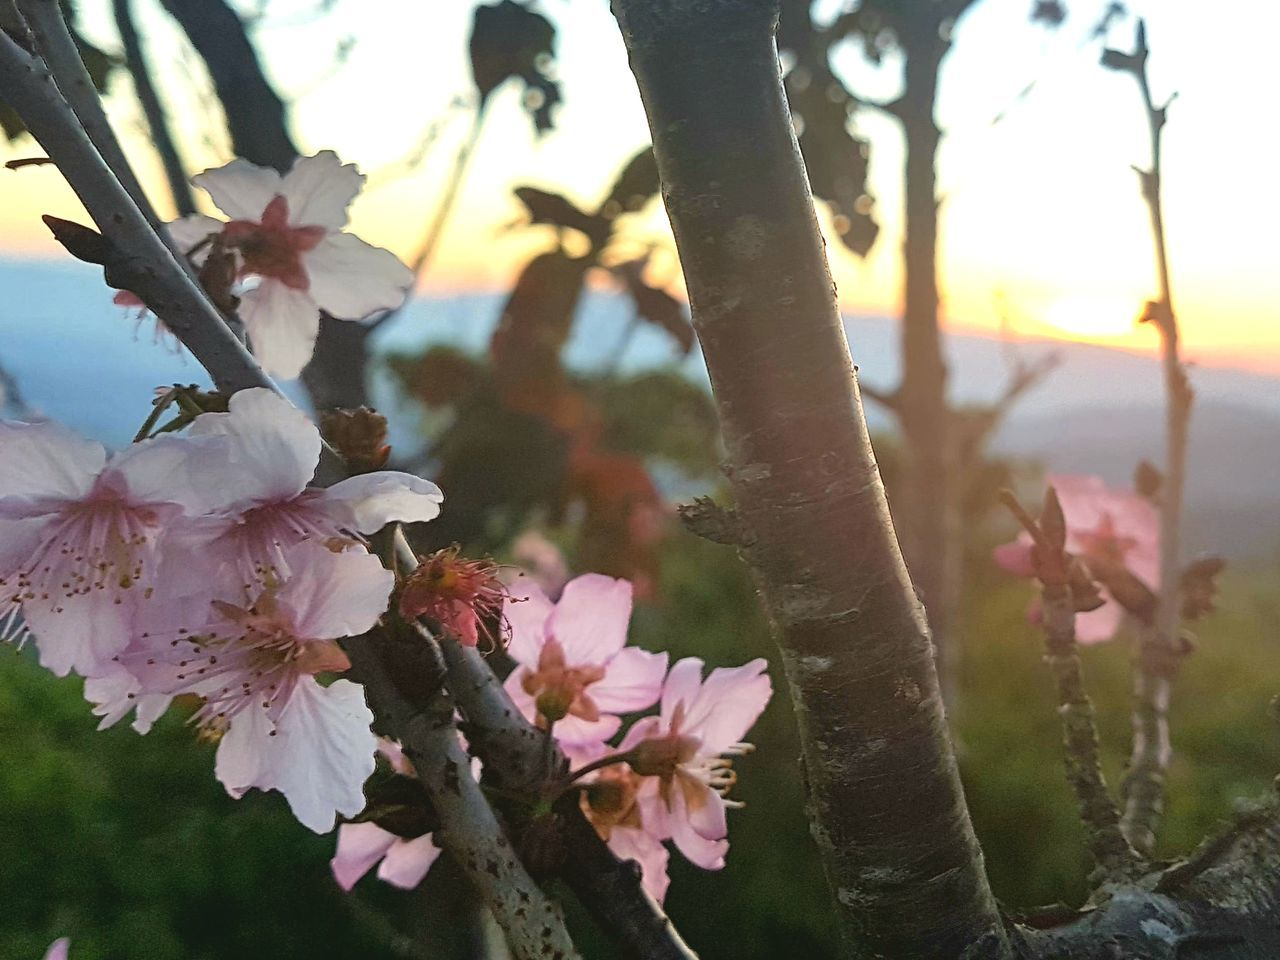 flower, growth, nature, beauty in nature, blossom, tree, fragility, springtime, freshness, branch, no people, petal, outdoors, day, close-up, blooming, flower head